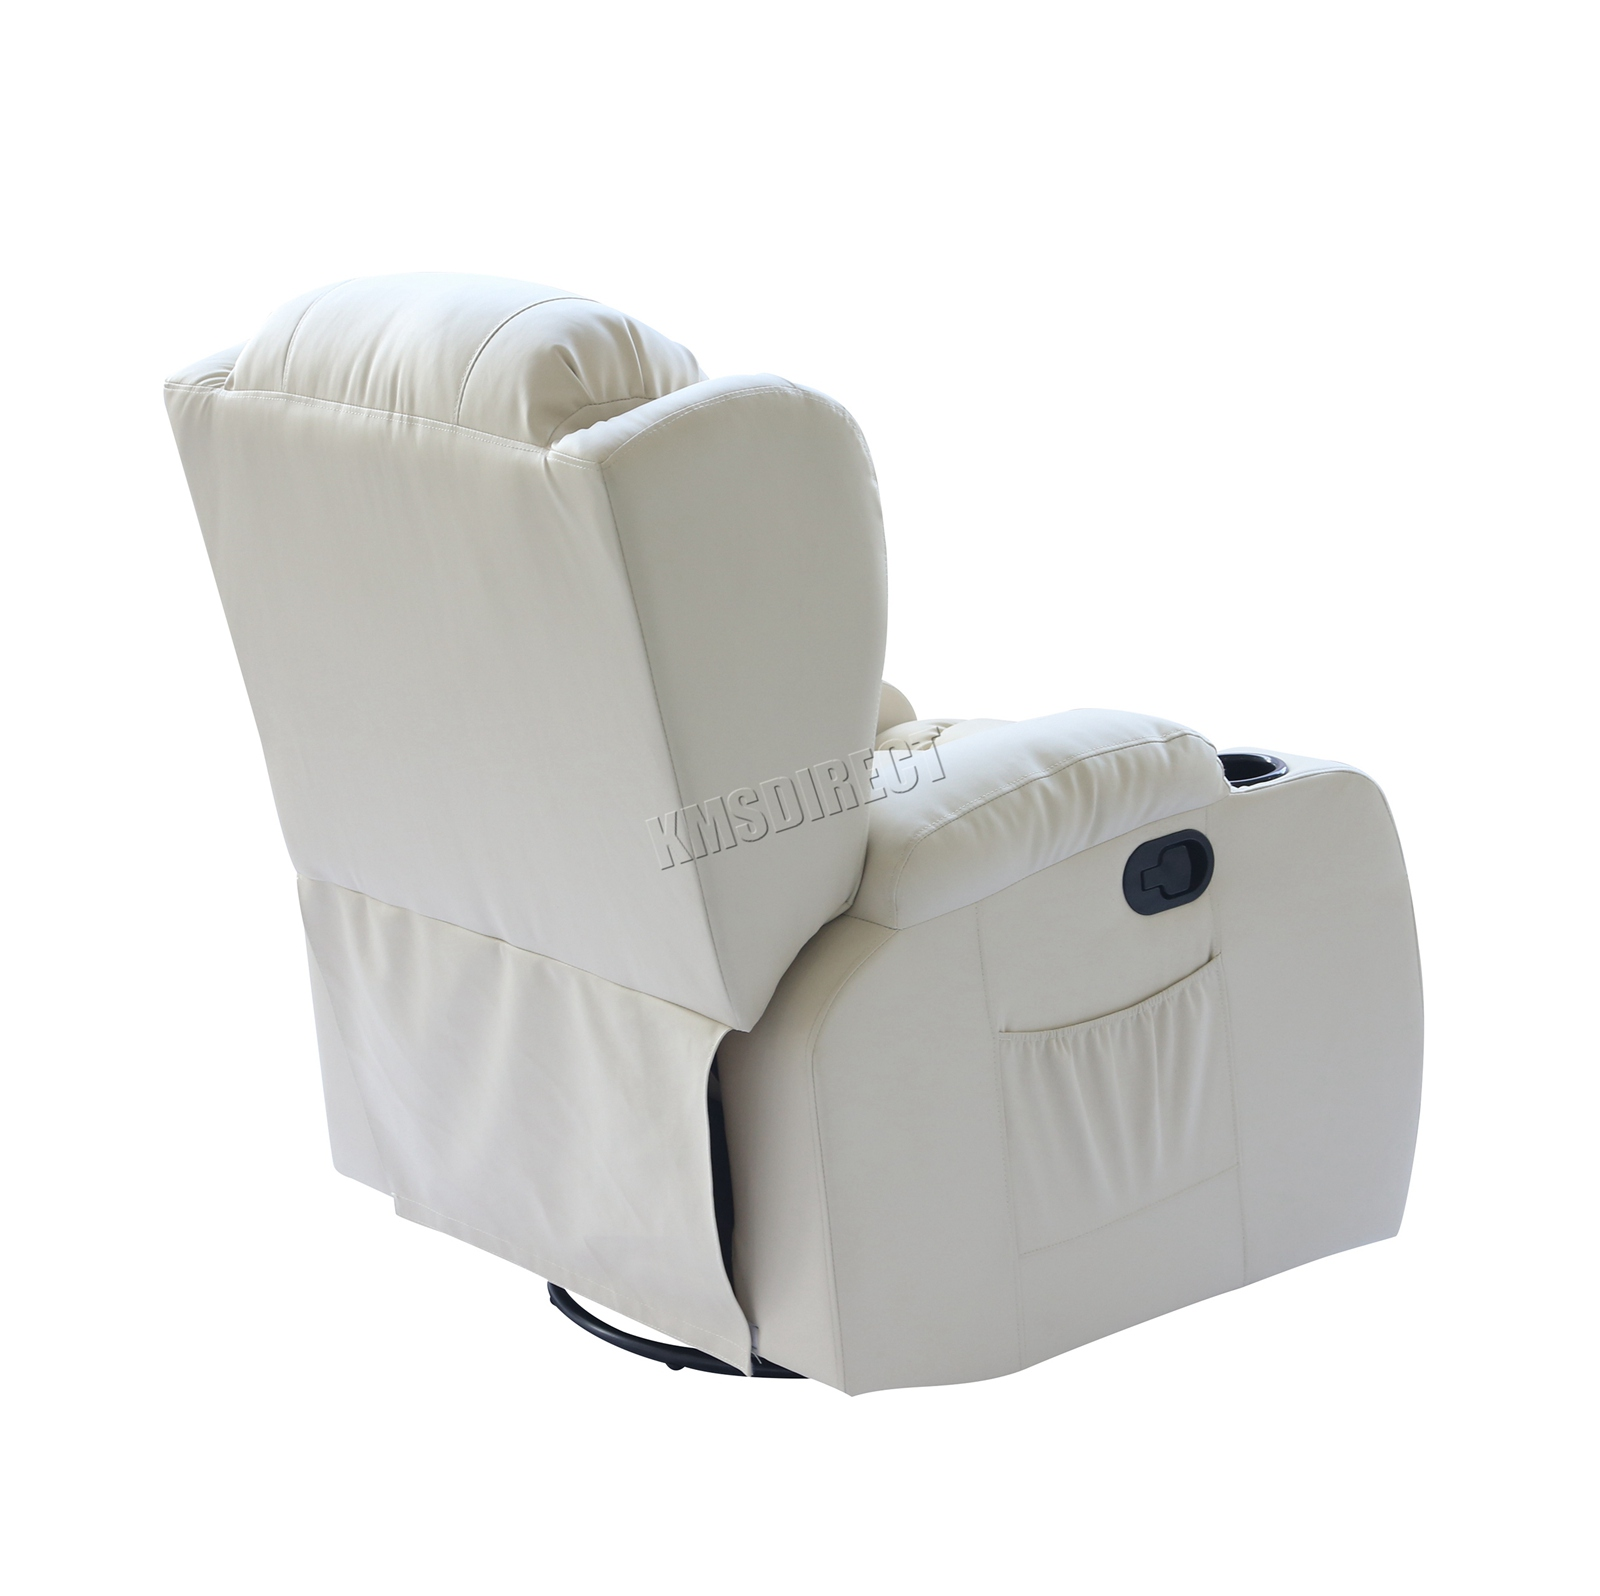 WESTWOOD-Leather-Recliner-Armchair-Swivel-Heated-chair-Massage-Gaming-Chair thumbnail 39